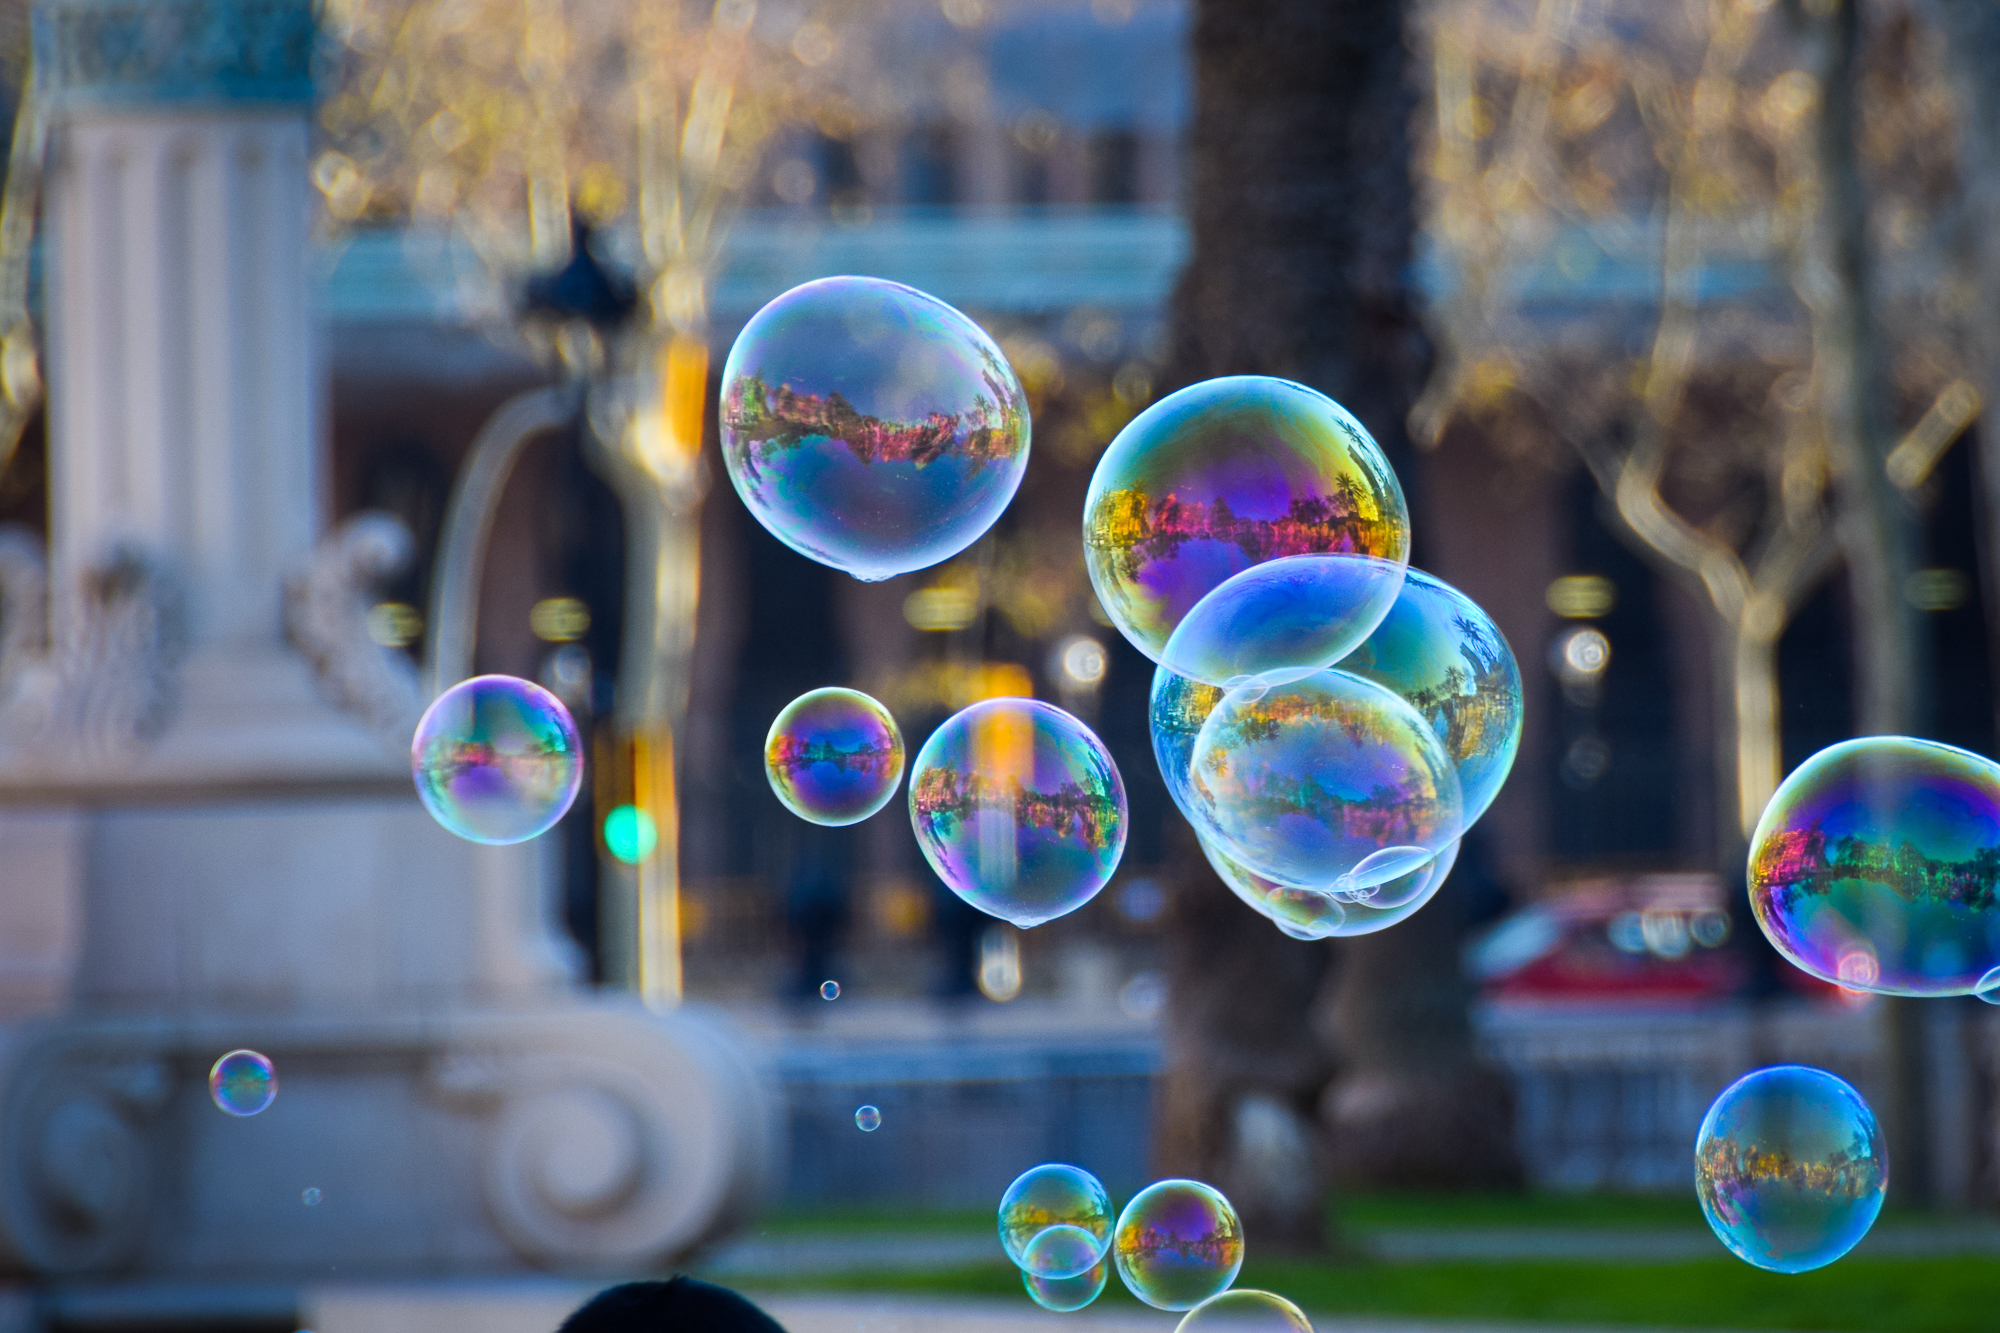 Barcelona, a city at the heart of the Catalonian area of Spain, is captivating from its buildings, to its parks, and, most of all, its people. No greater joy can be found than a child playing with bubbles in a historic park.